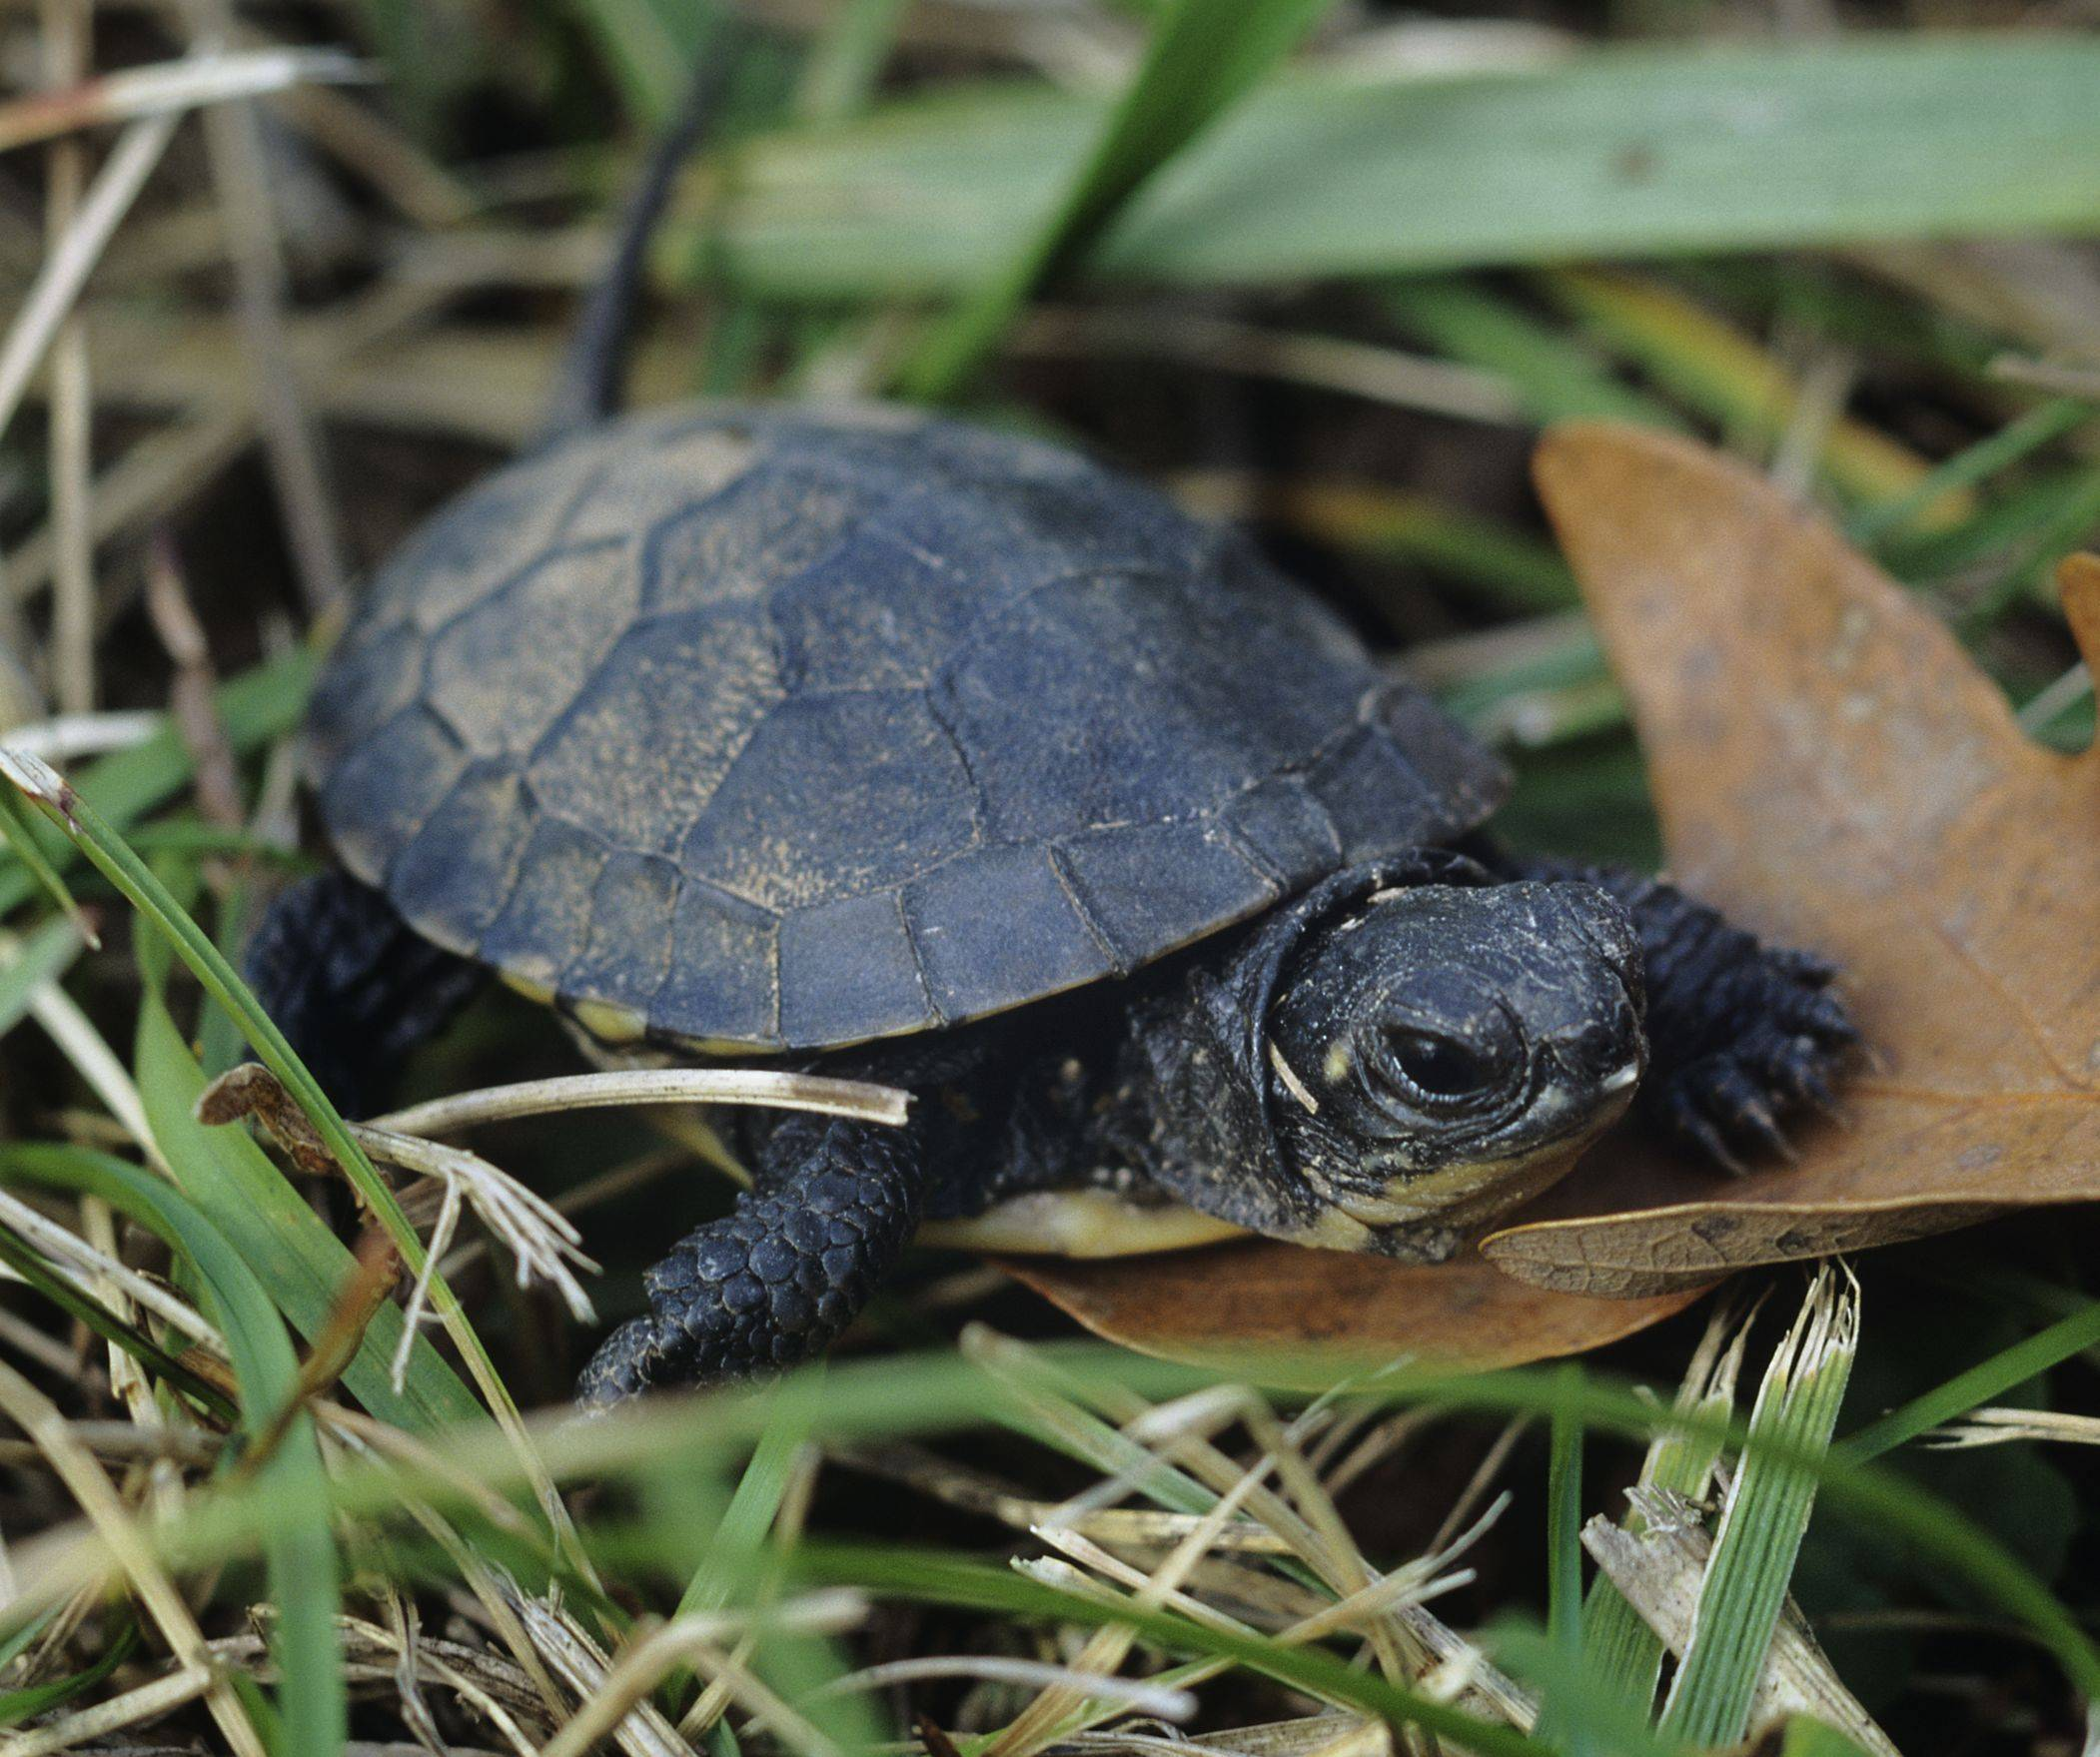 The Blanding's Turtle is an endangered species in Cook and Lake counties. Cook and Lake counties have more endangered and threatened species than any other county in the state.